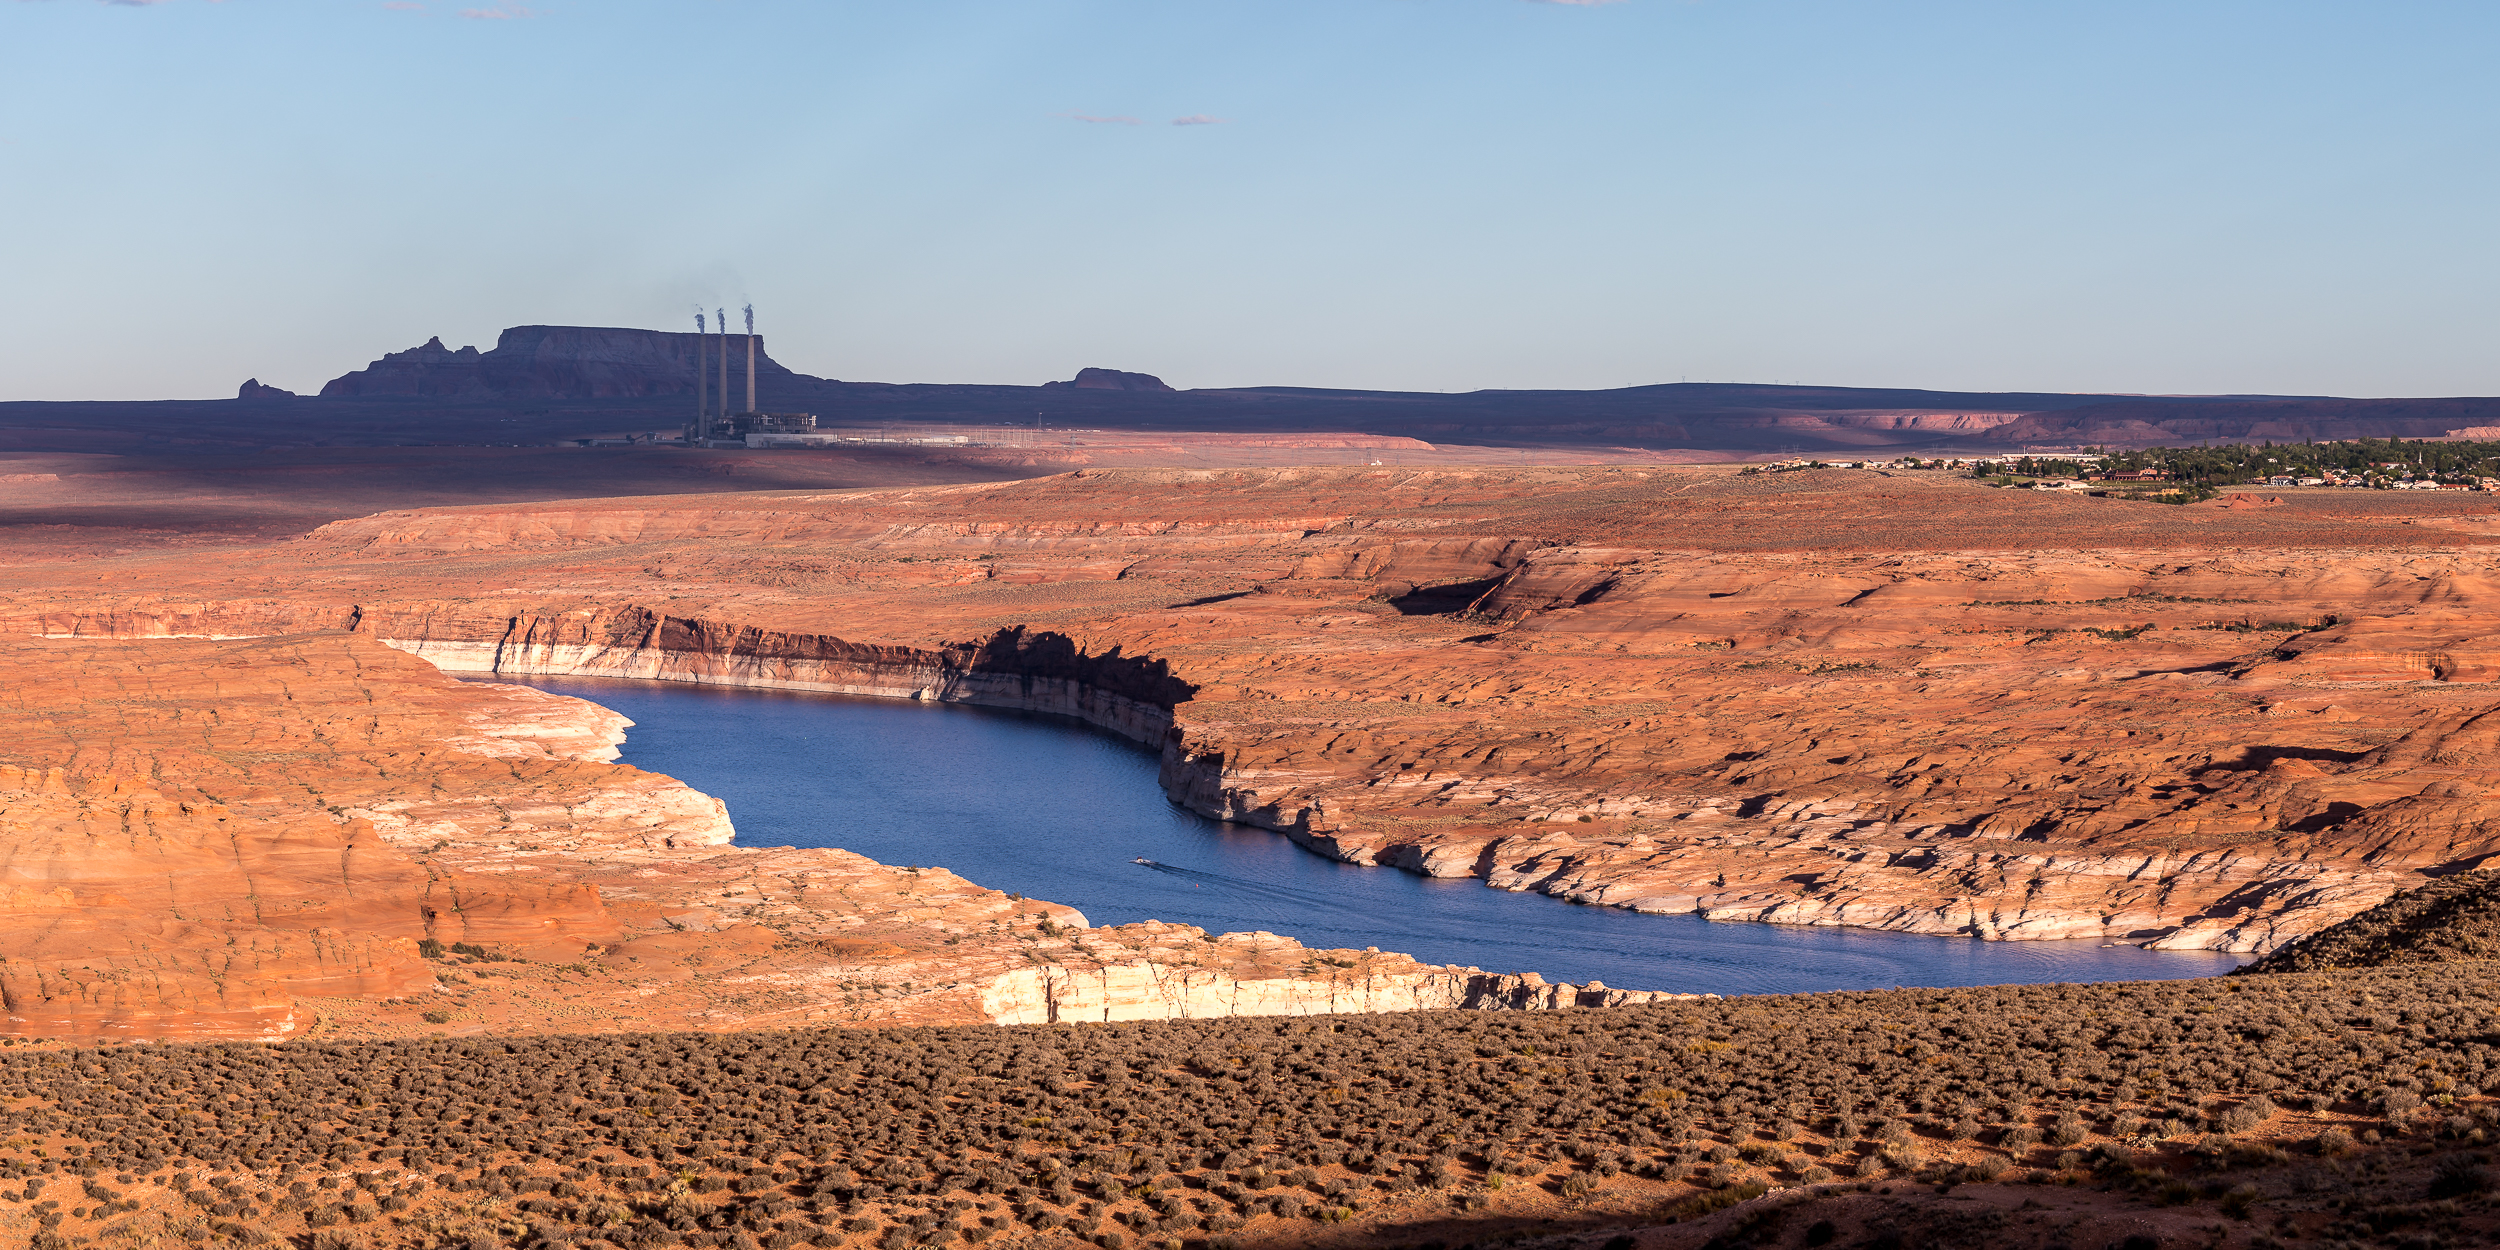 View of Page, Lake Powell, and Navajo Generating Station from Wahweap Overlook.